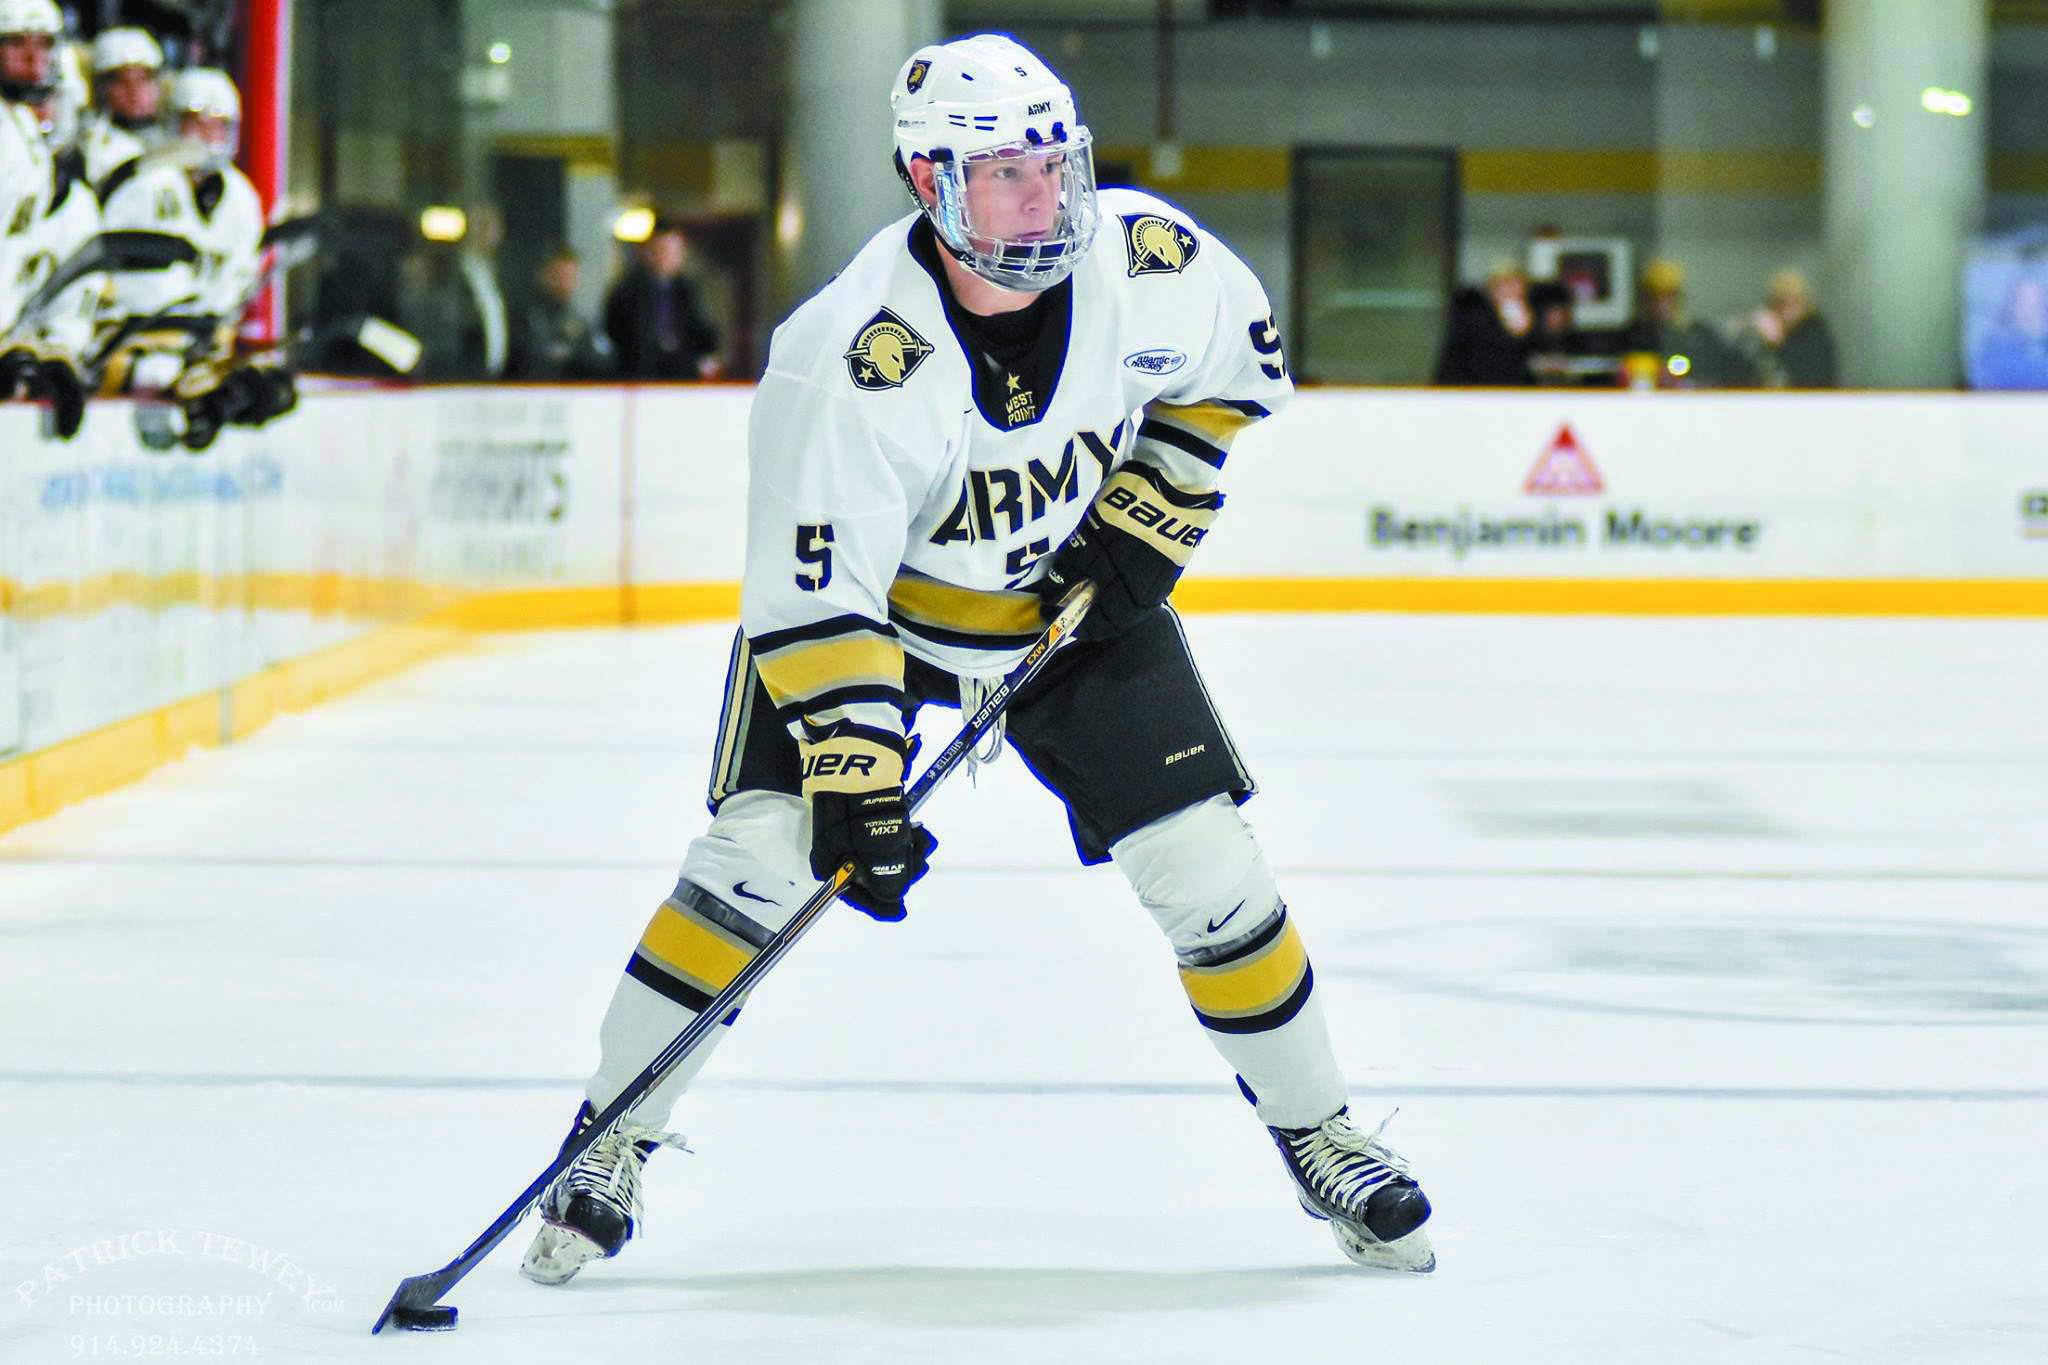 Army hockey player Joe Shecter from Farmington Hills has played in 15 games this season.